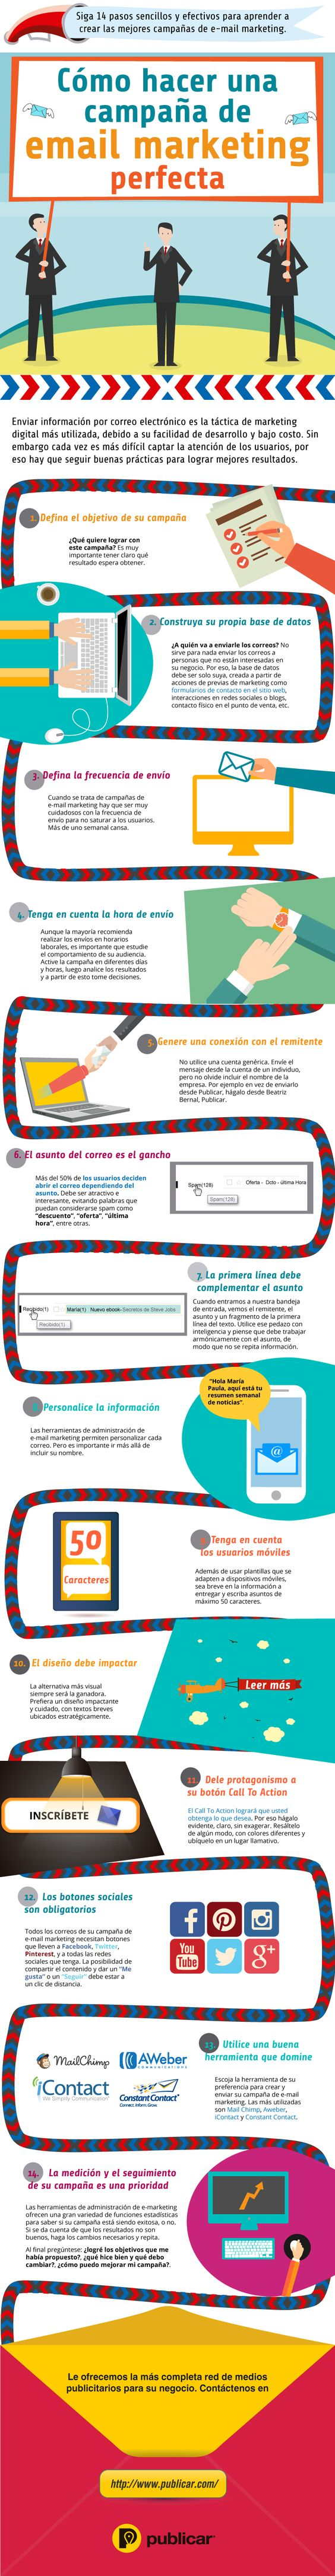 campaña exitosa de e-mail marketing